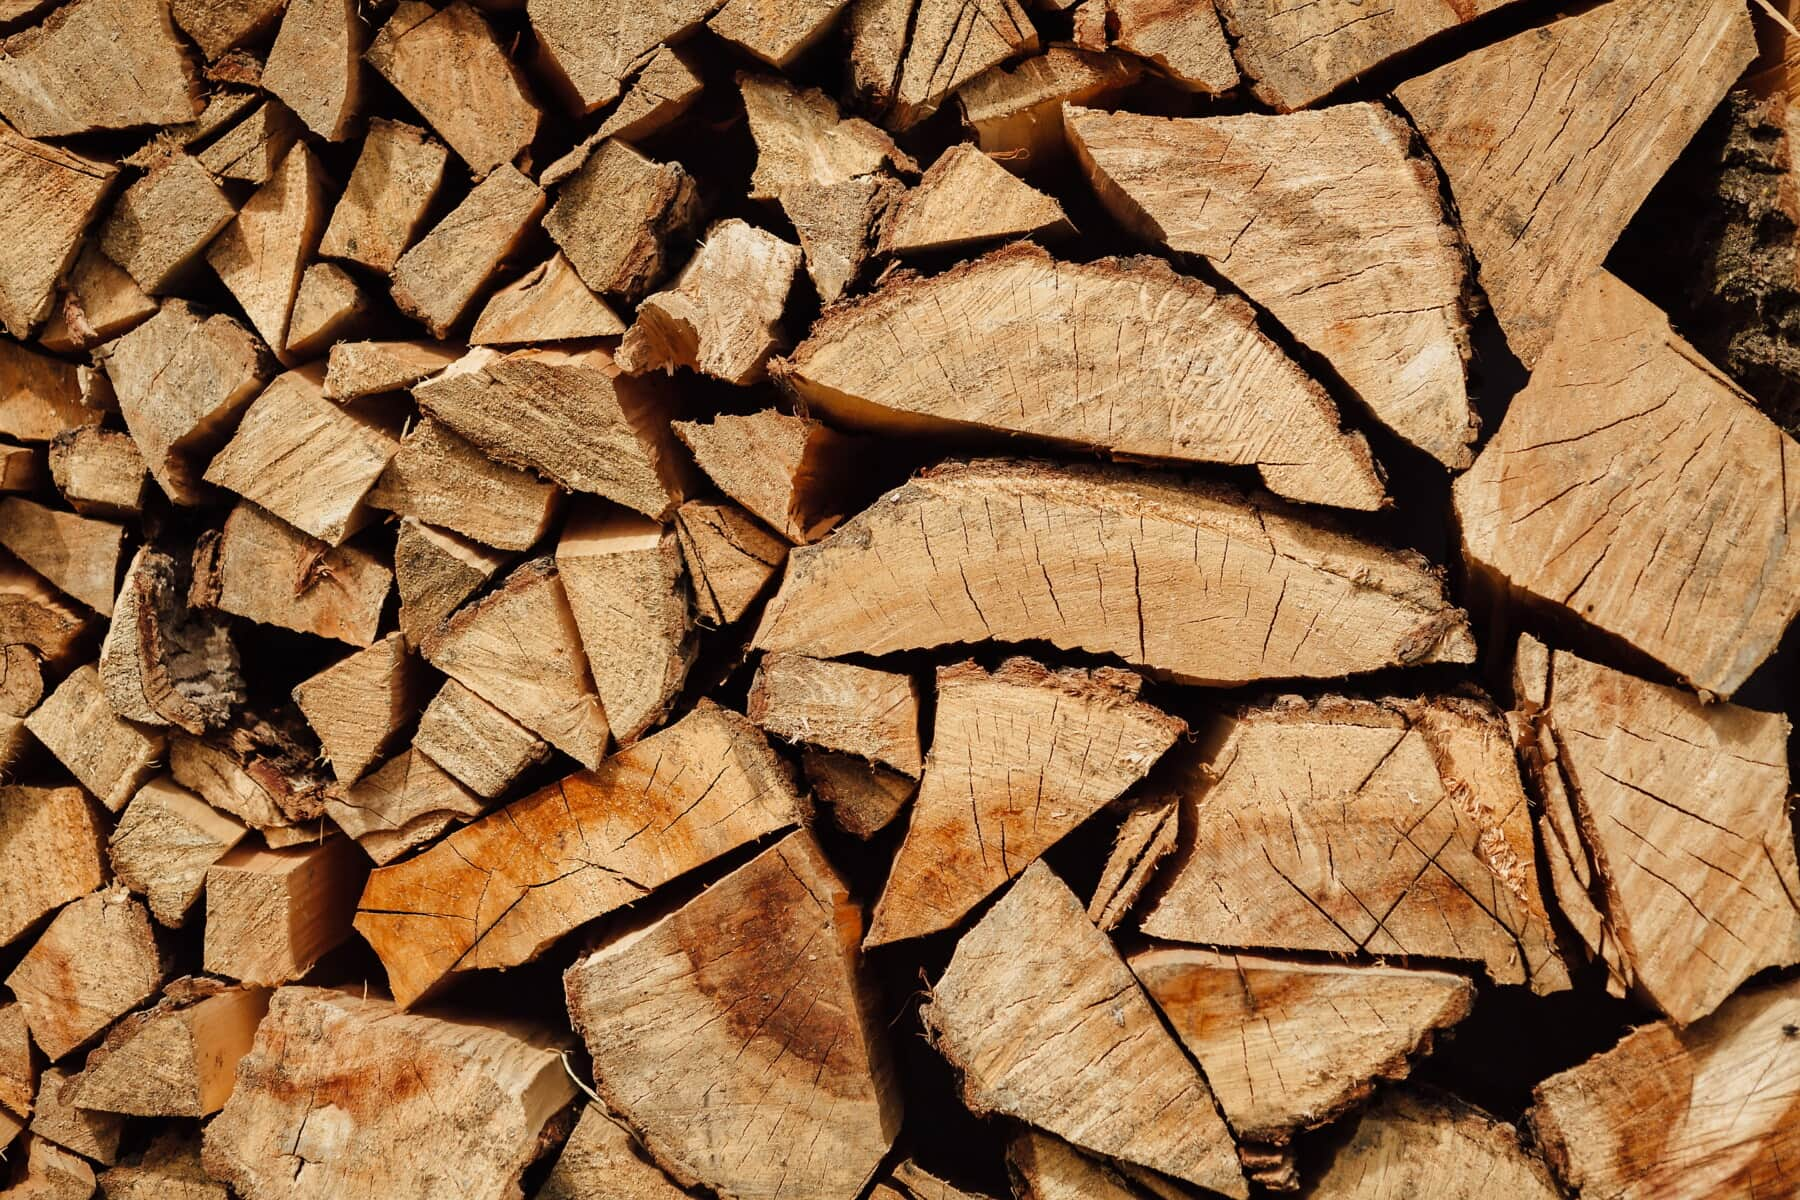 firewood, hardwood, rough, bark, texture, wood, nature, tree, dry, forestry